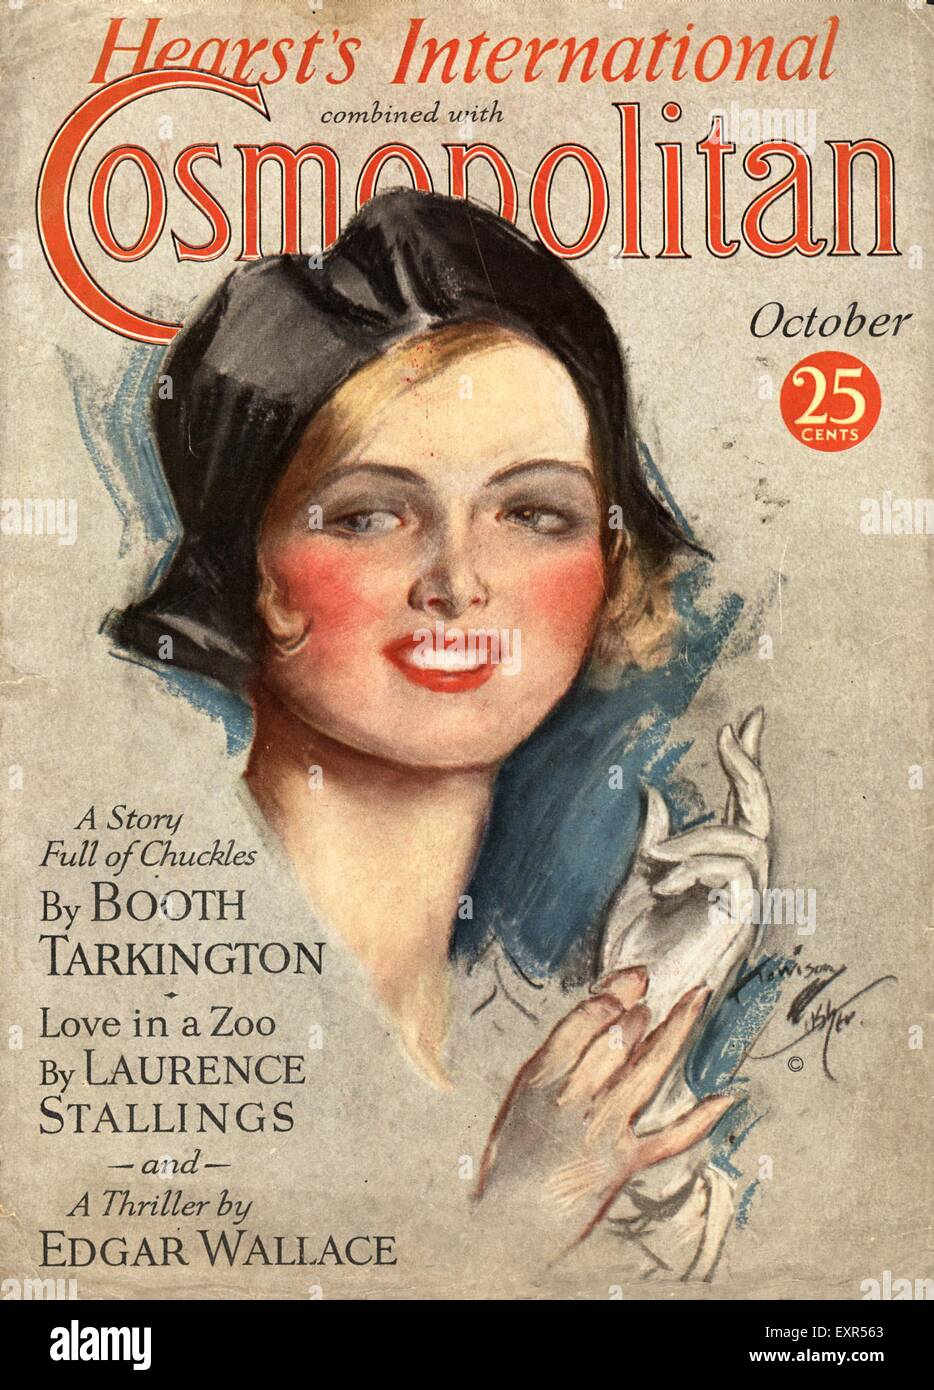 1920s Magazine Cover High Resolution Stock Photography And Images Alamy